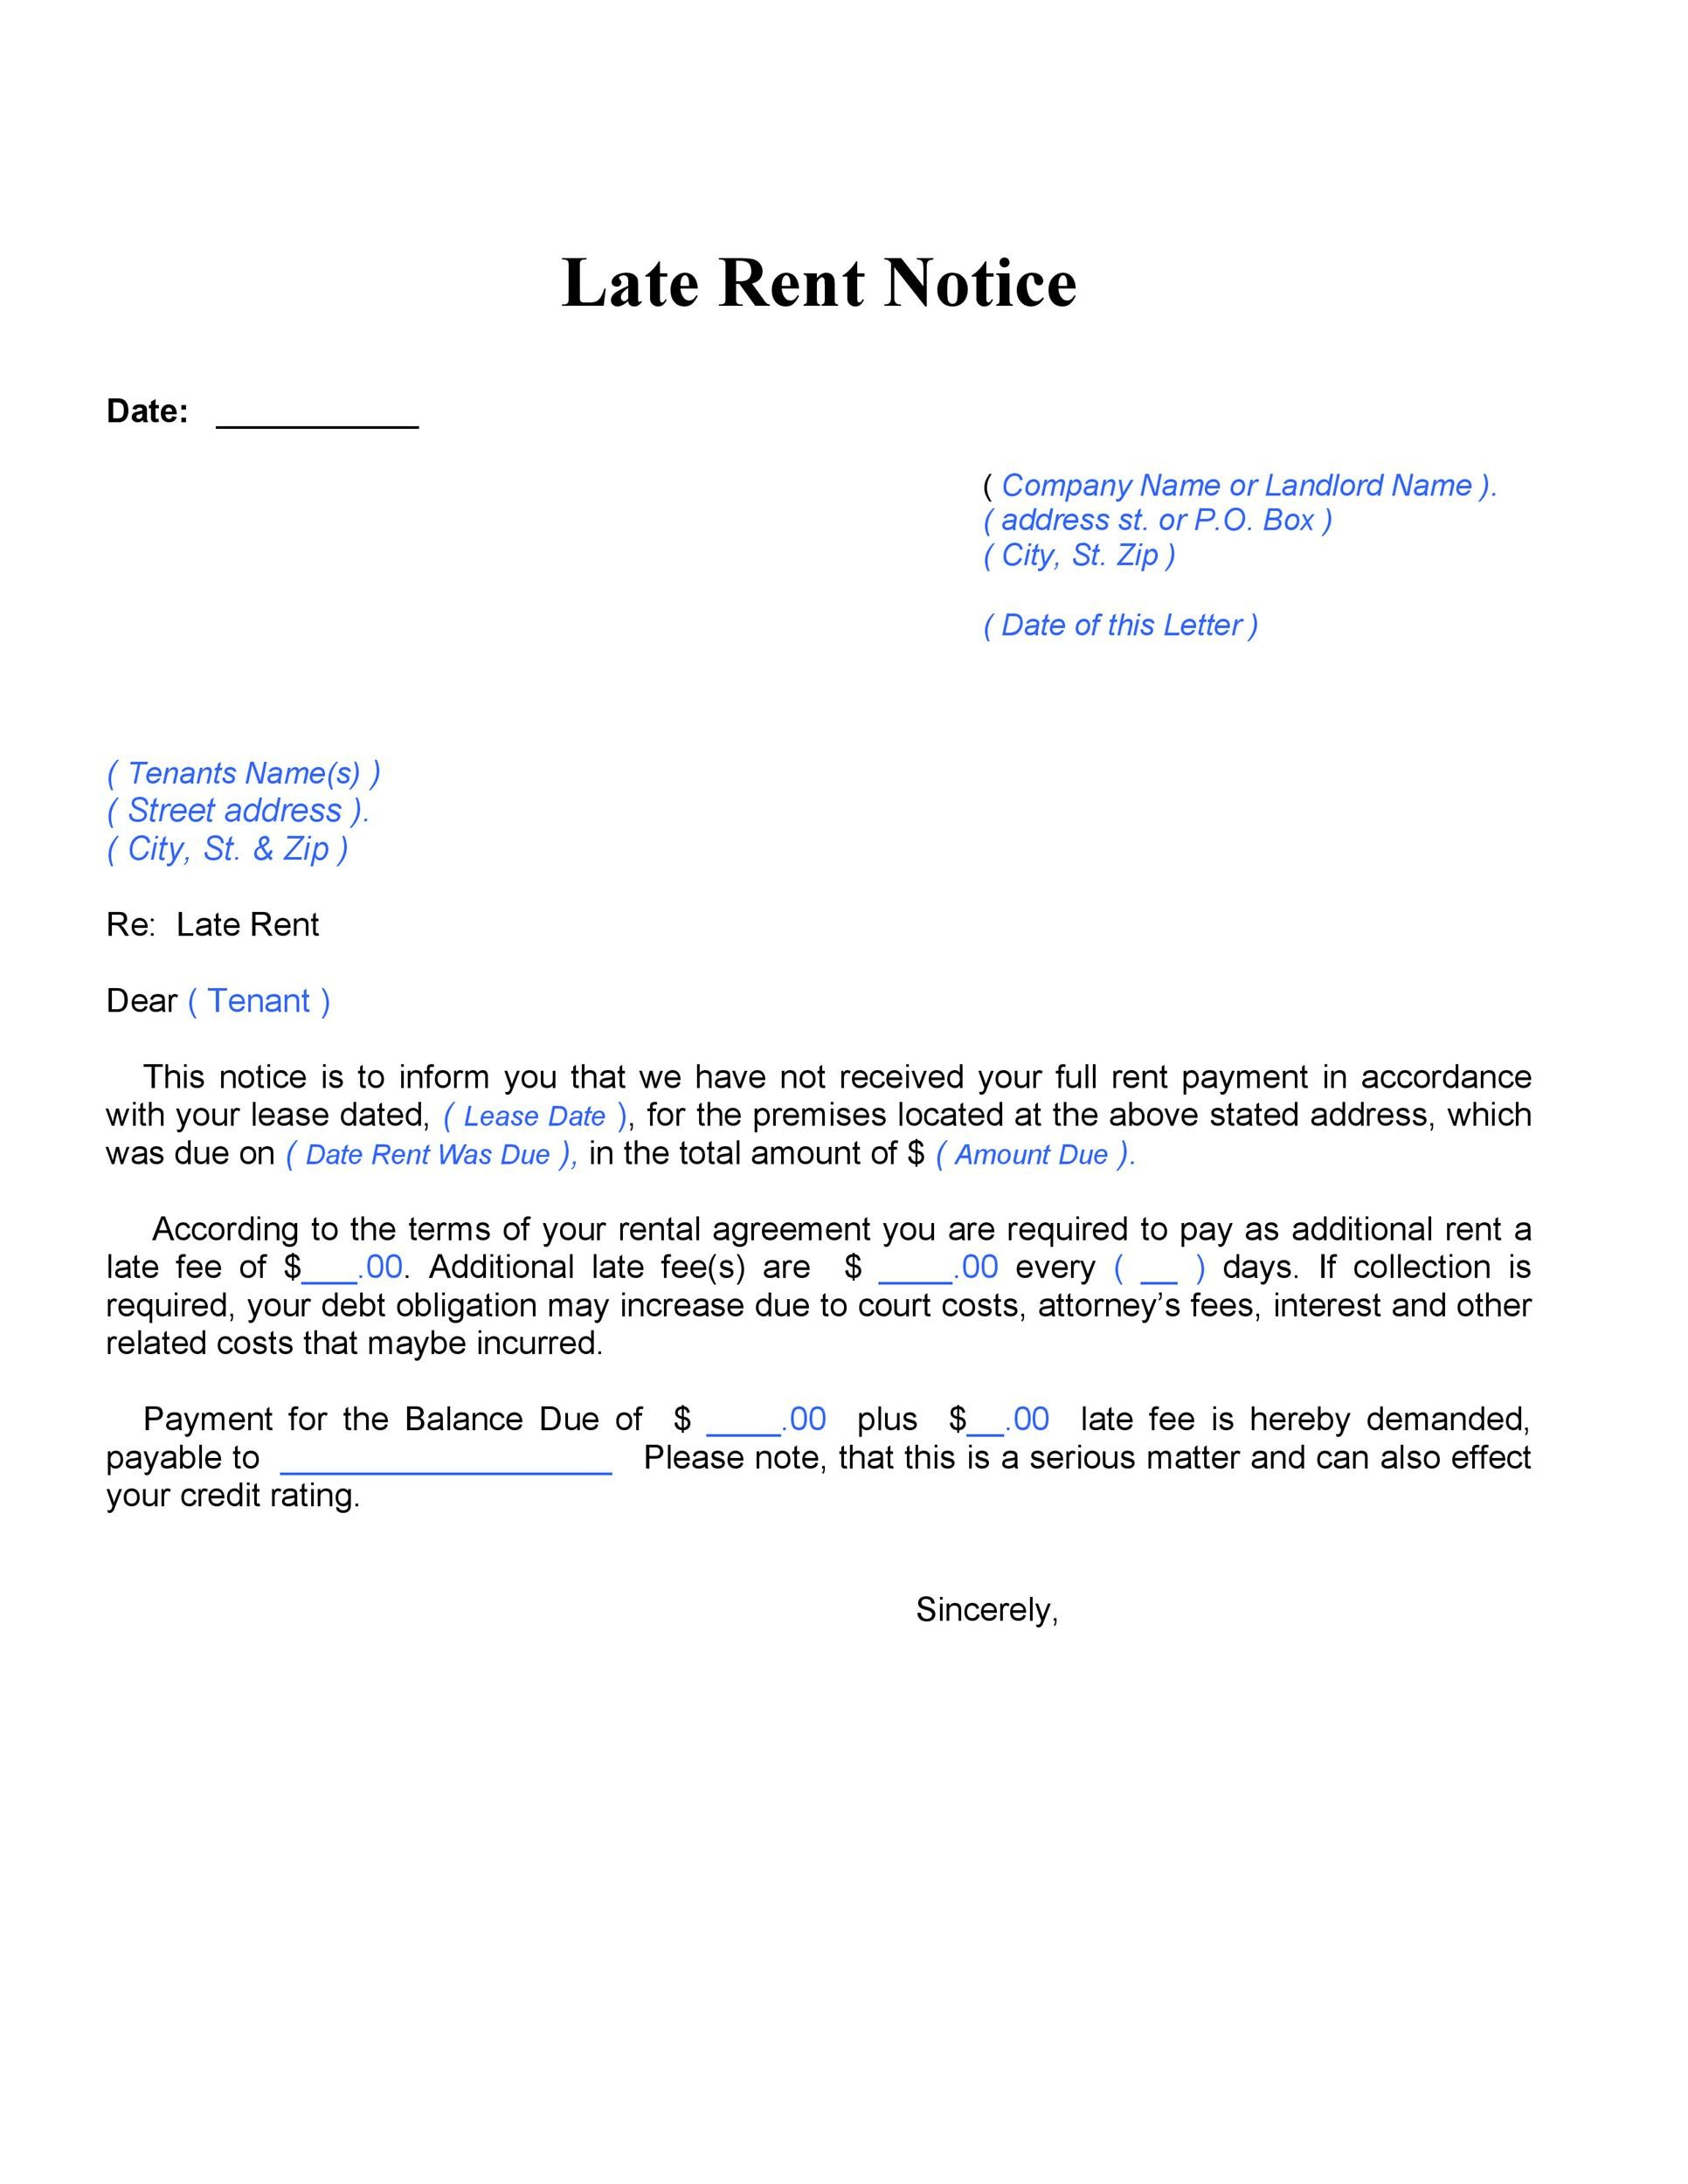 Free Late Rent Notice Template 10